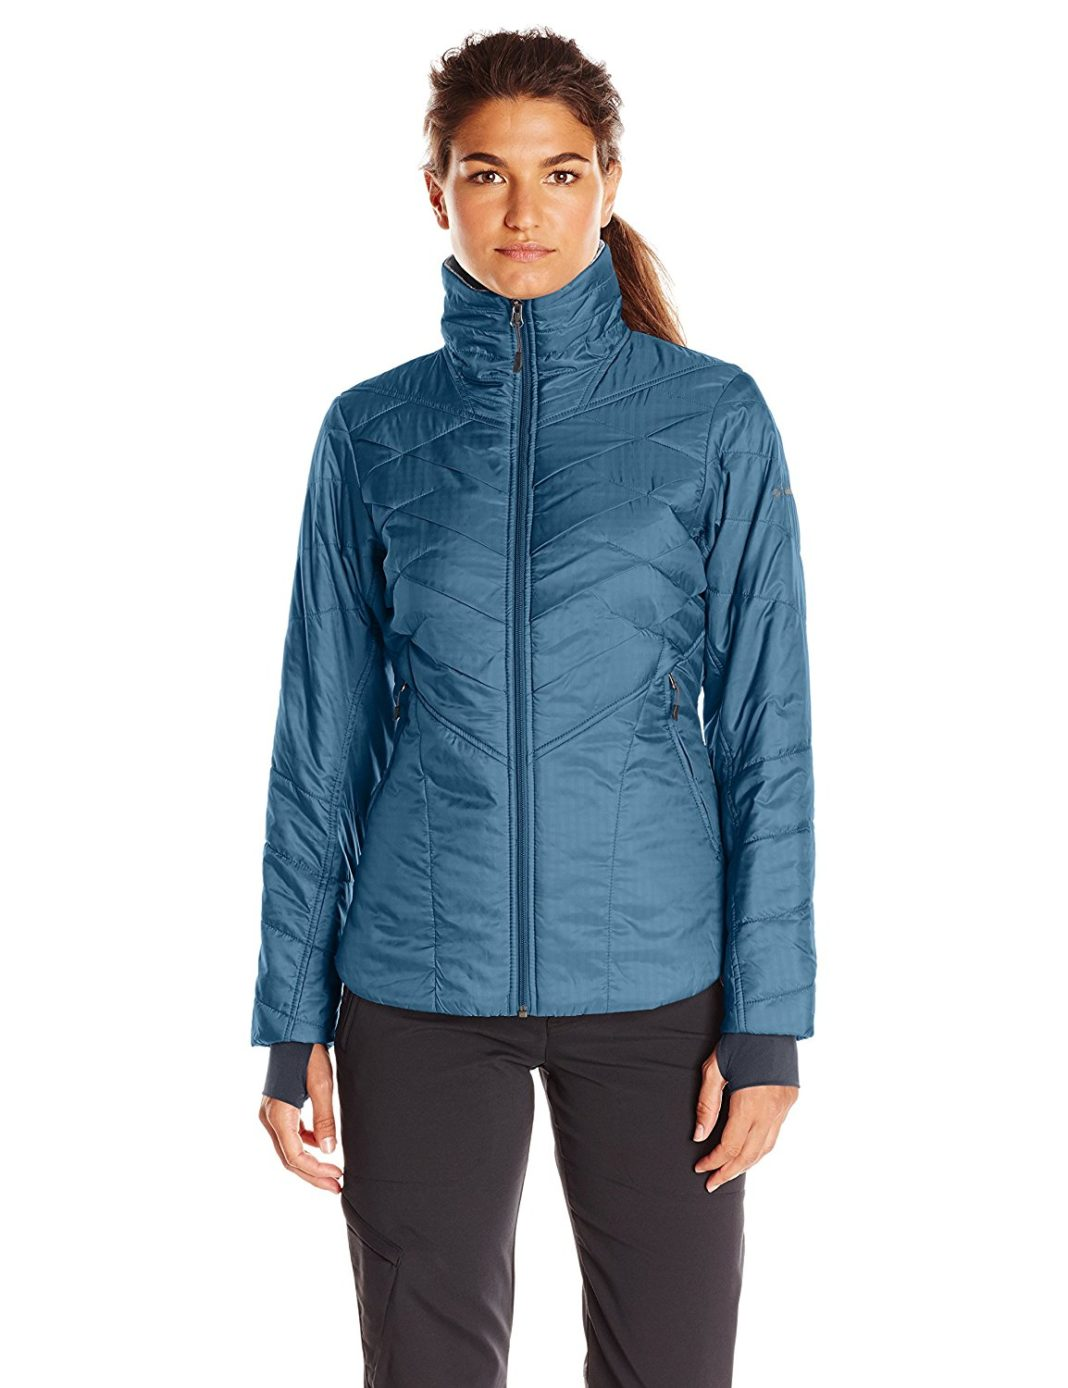 best down jackets for women - Columbia